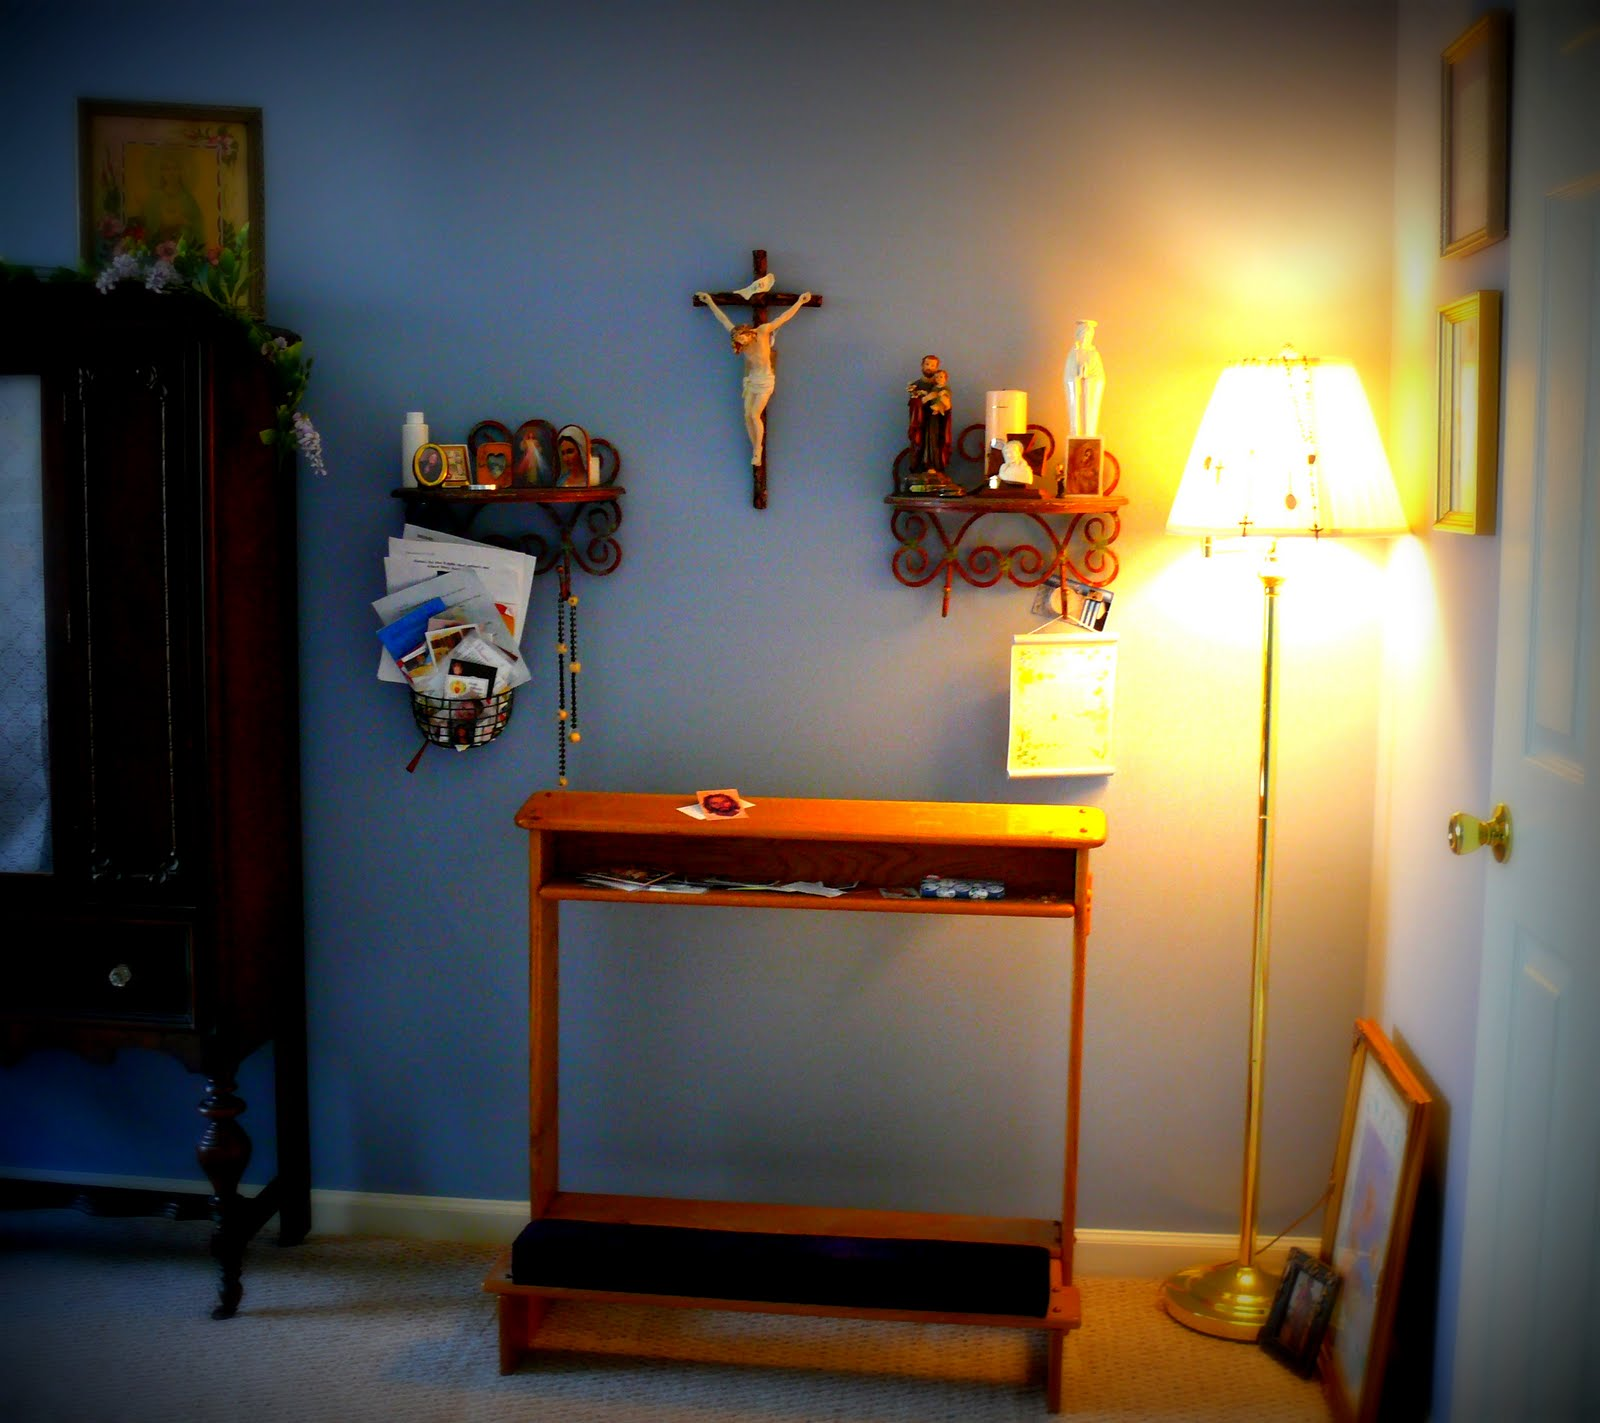 Family Altars For Sale: Prayer Altars, Idolatry, And Grace